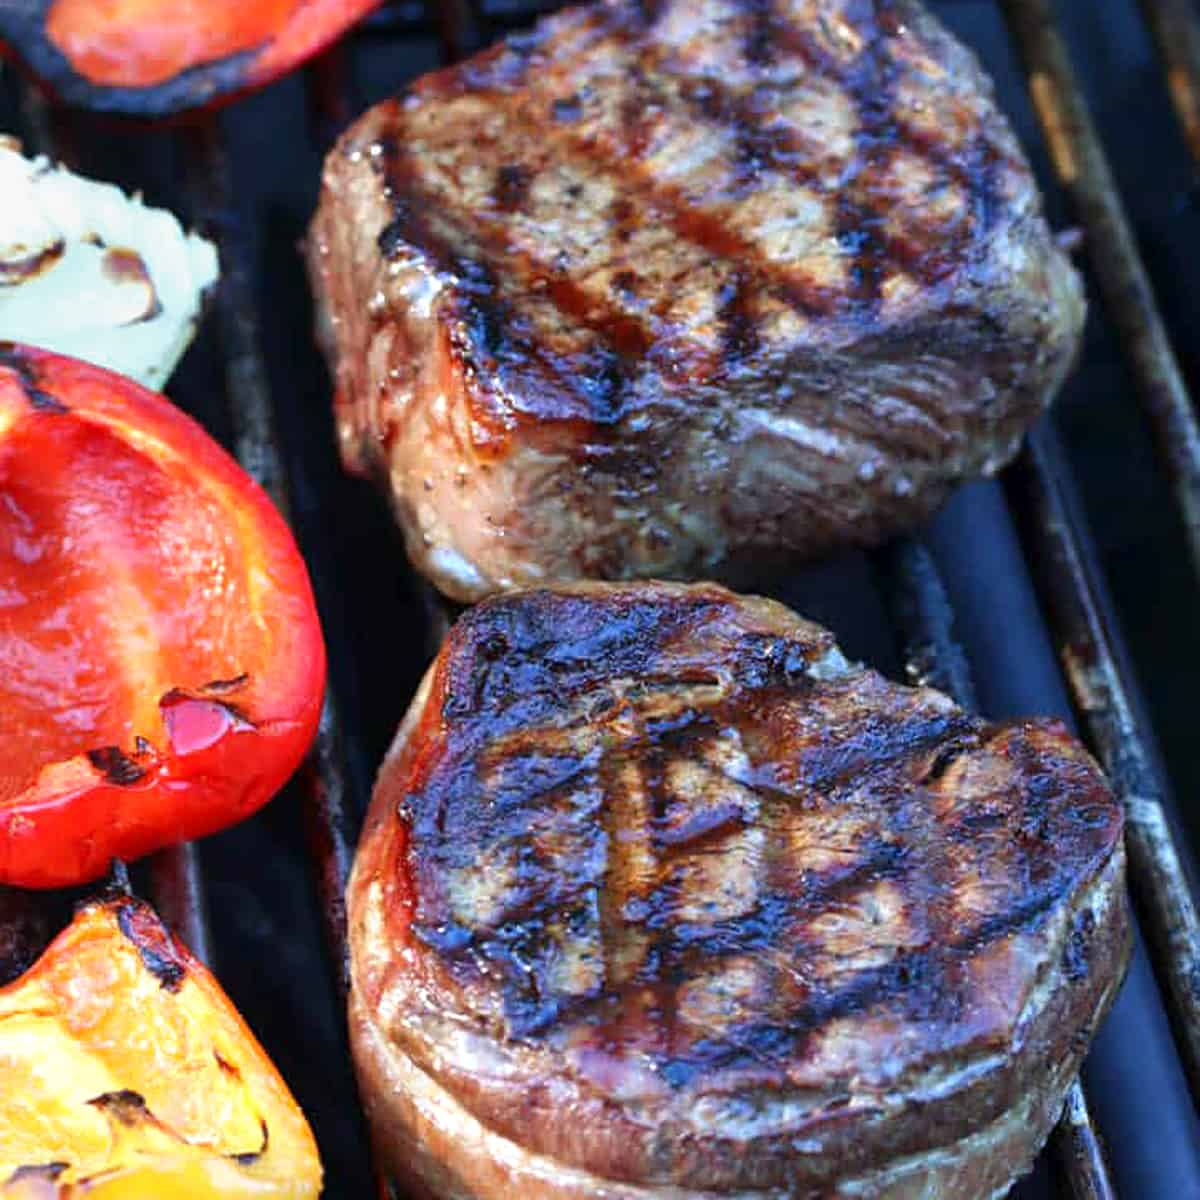 grilled steaks on grill